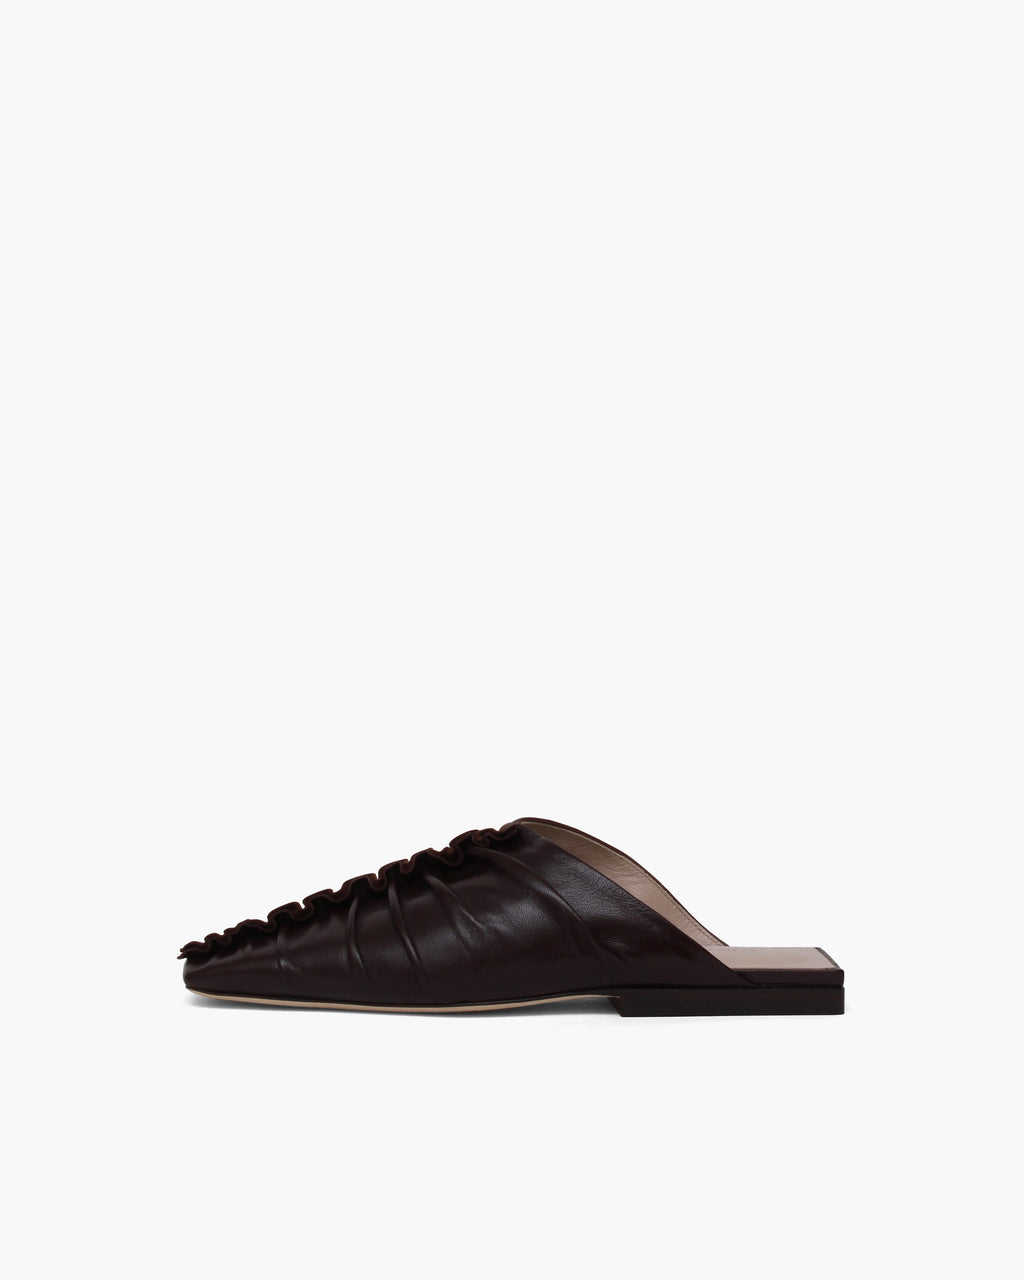 George Mules Leather Brown Two-tone